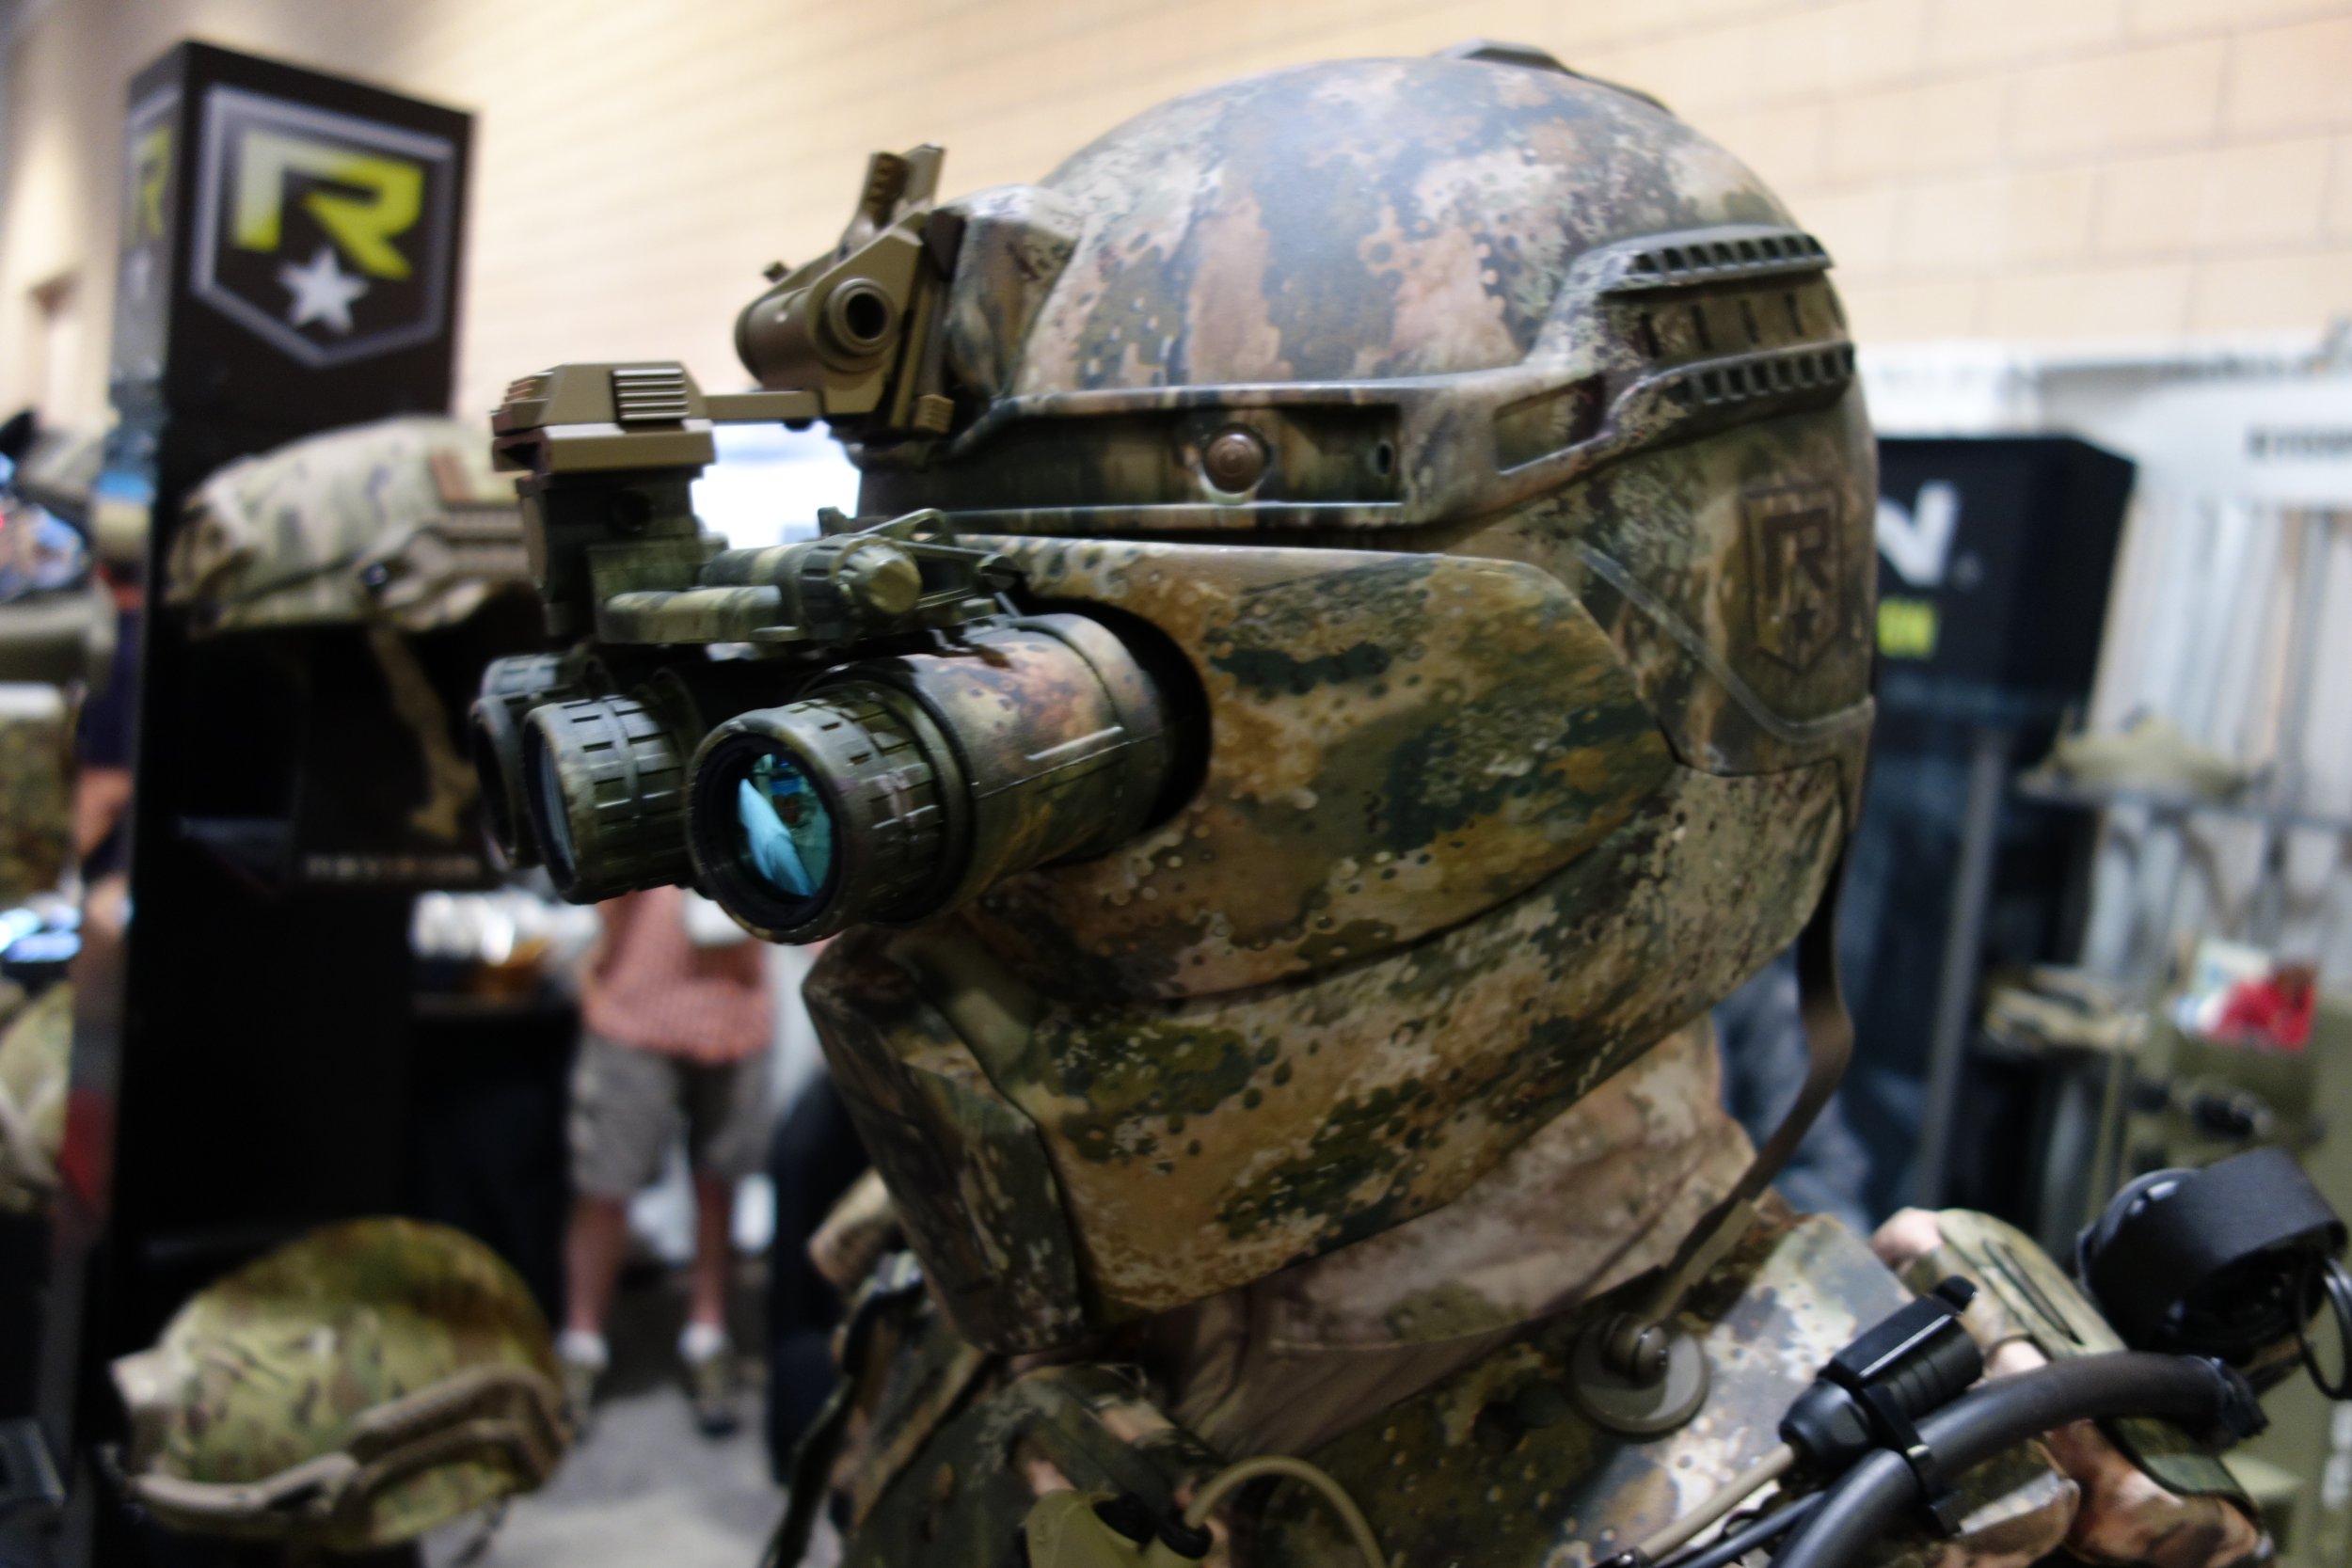 army suits up for the future essay For more information, visit mbacom/military for more  become invaluable  resources for you in the future similarly, you  how did your military experience  help you stand out  explanations, math review, essay topics, and a  the type  of business school, company, and corporate cultures that would suit me would be.